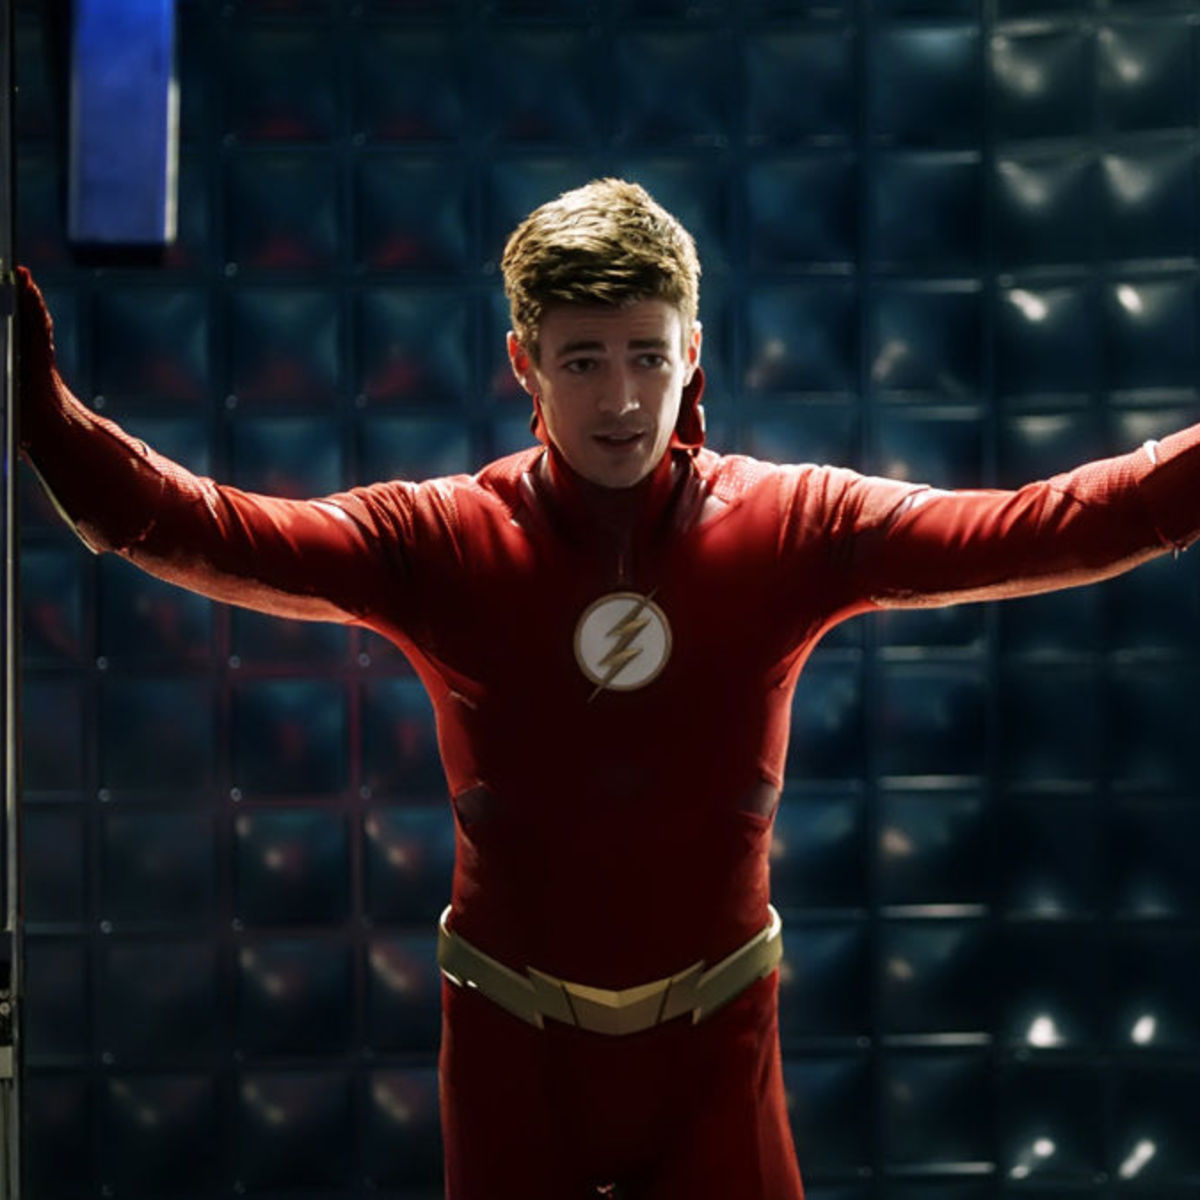 The Flash CW press photo